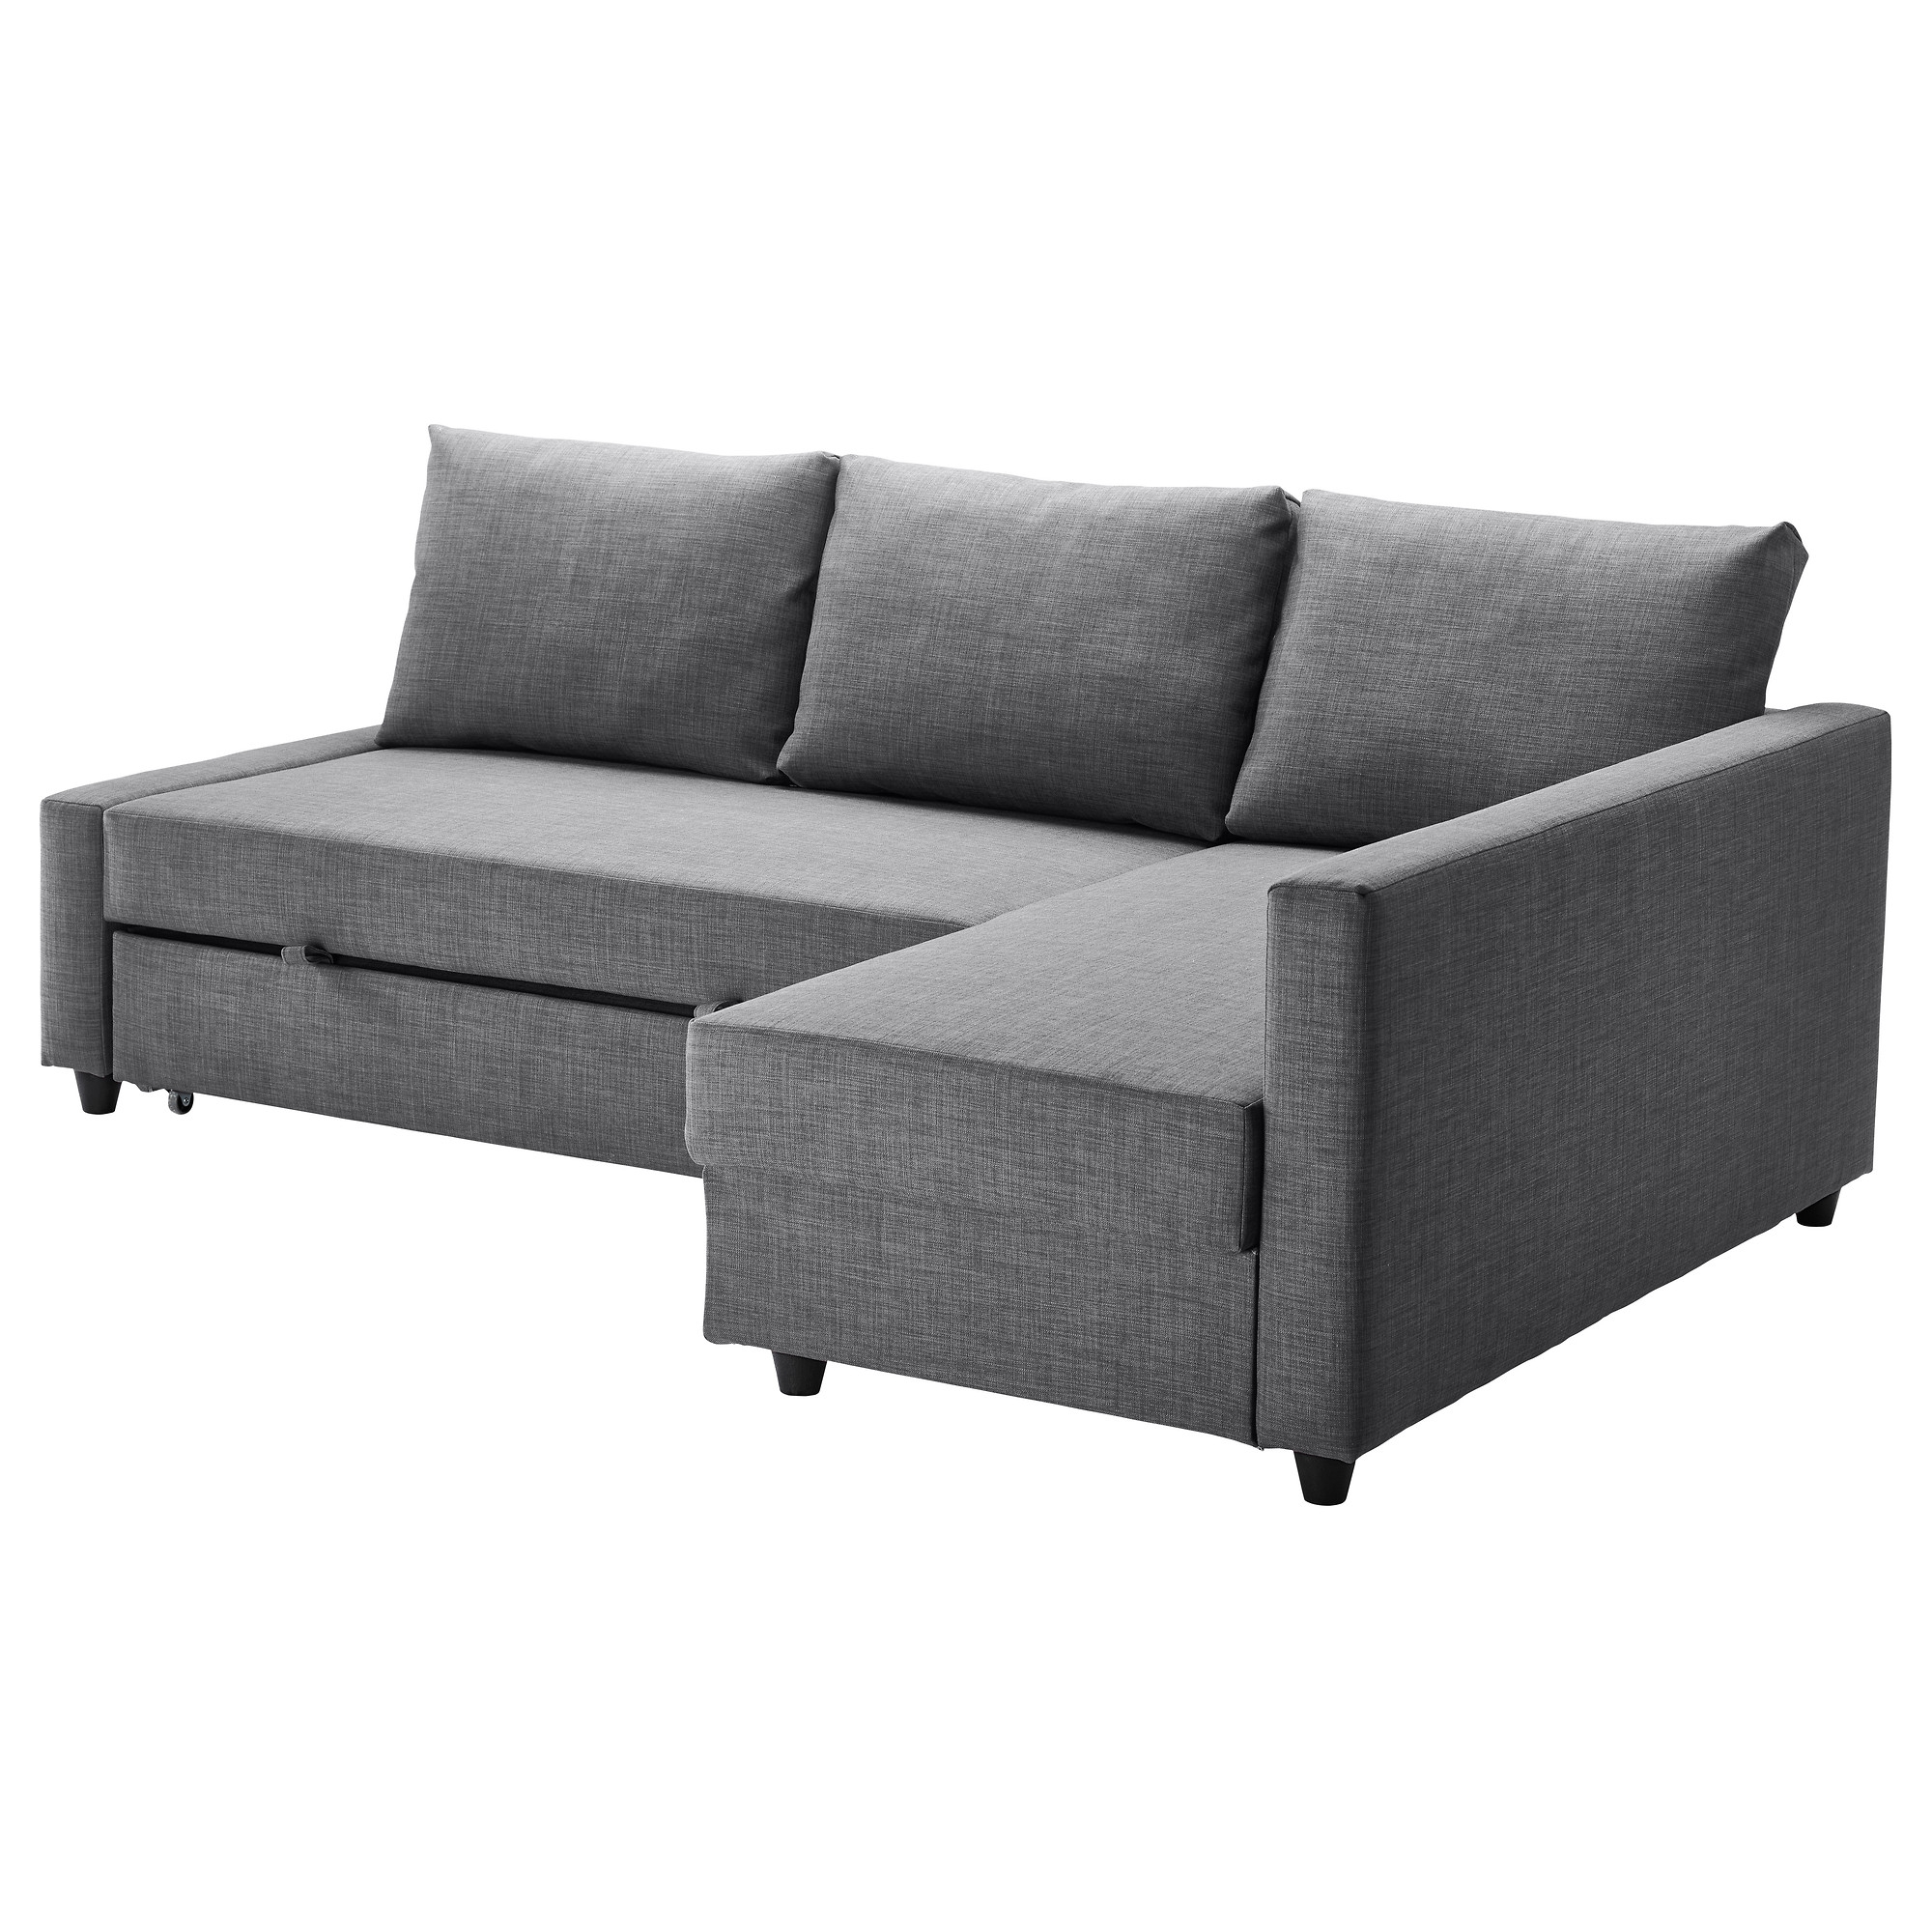 FRIHETEN corner sofa-bed with chaise longue, SKIFTEBO dark grey